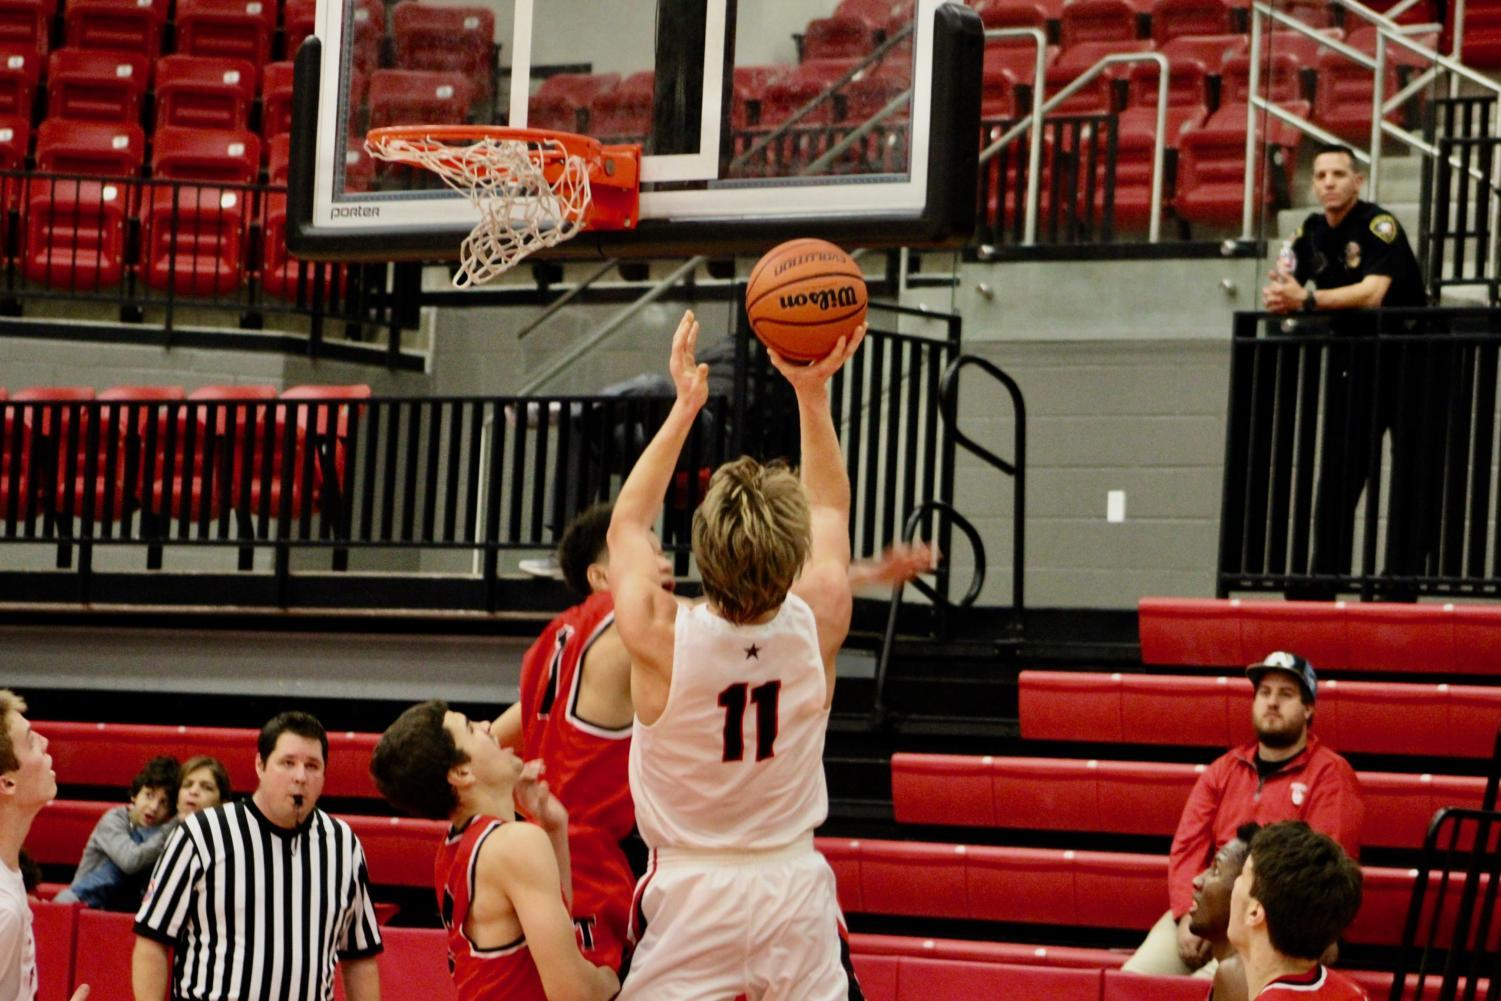 Coppell High School senior small forward Kevin Galvin shoots a layup during the game against the Trinity Trojans at the Coppell High School Arena on Nov. 29. The Coppell Cowboys defeated the Trinity Trojans, 58-49.